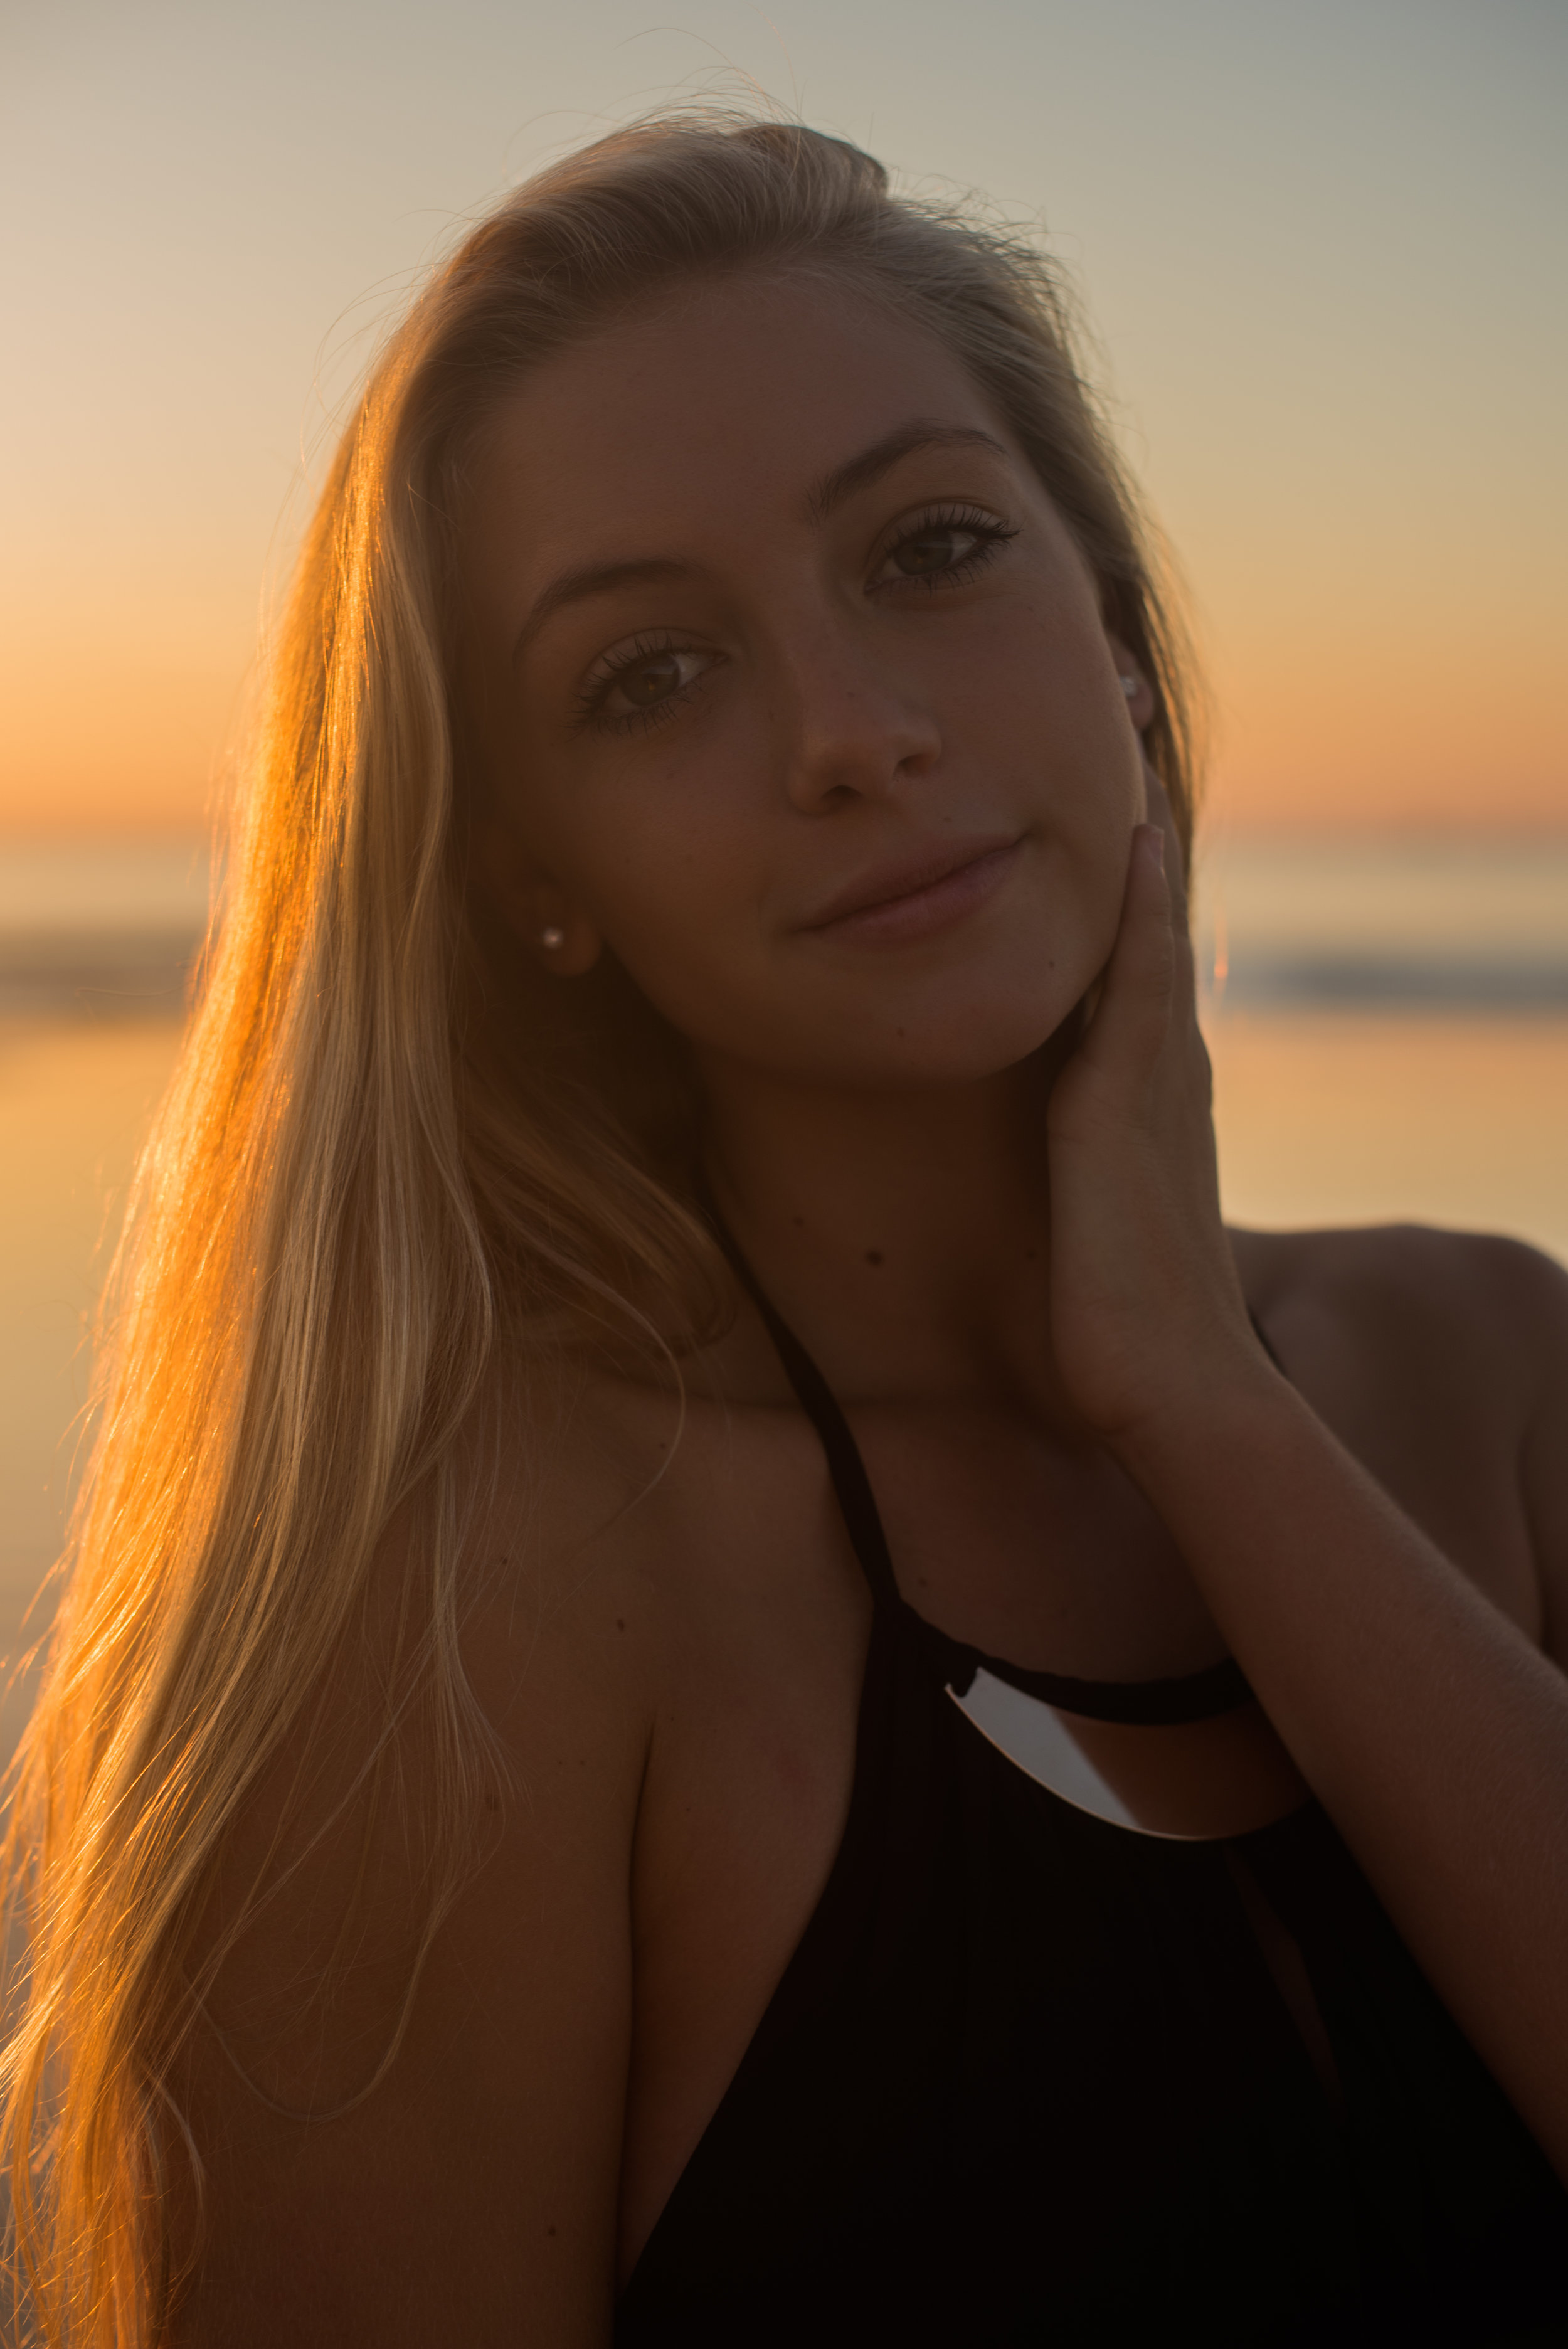 maddie-cocoa-beach-senior-photo-1-13.jpg